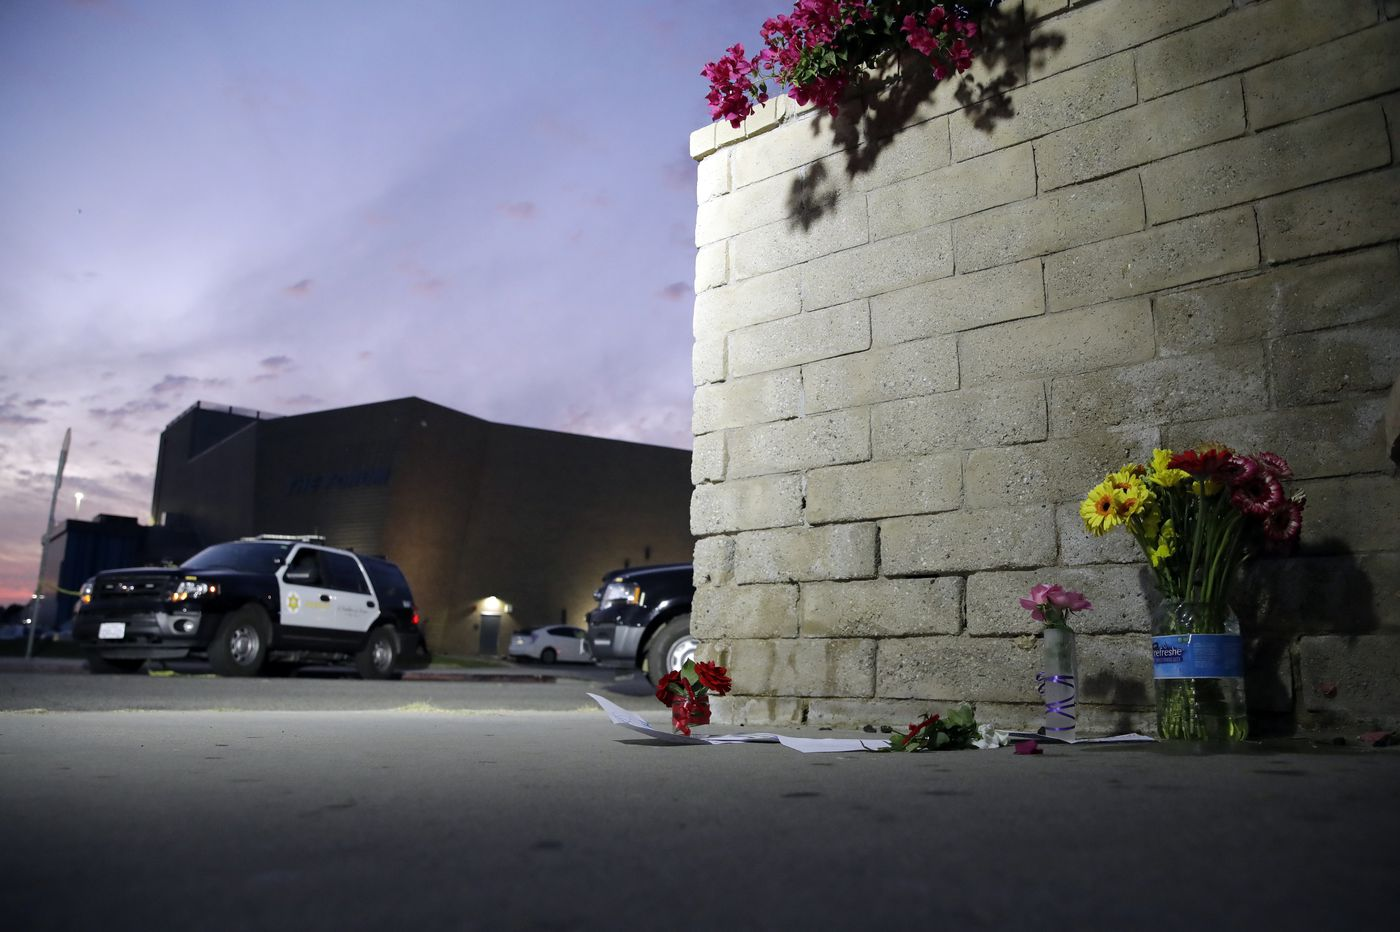 Huddled in locker room after California high school shooting, basketball team relied on texts